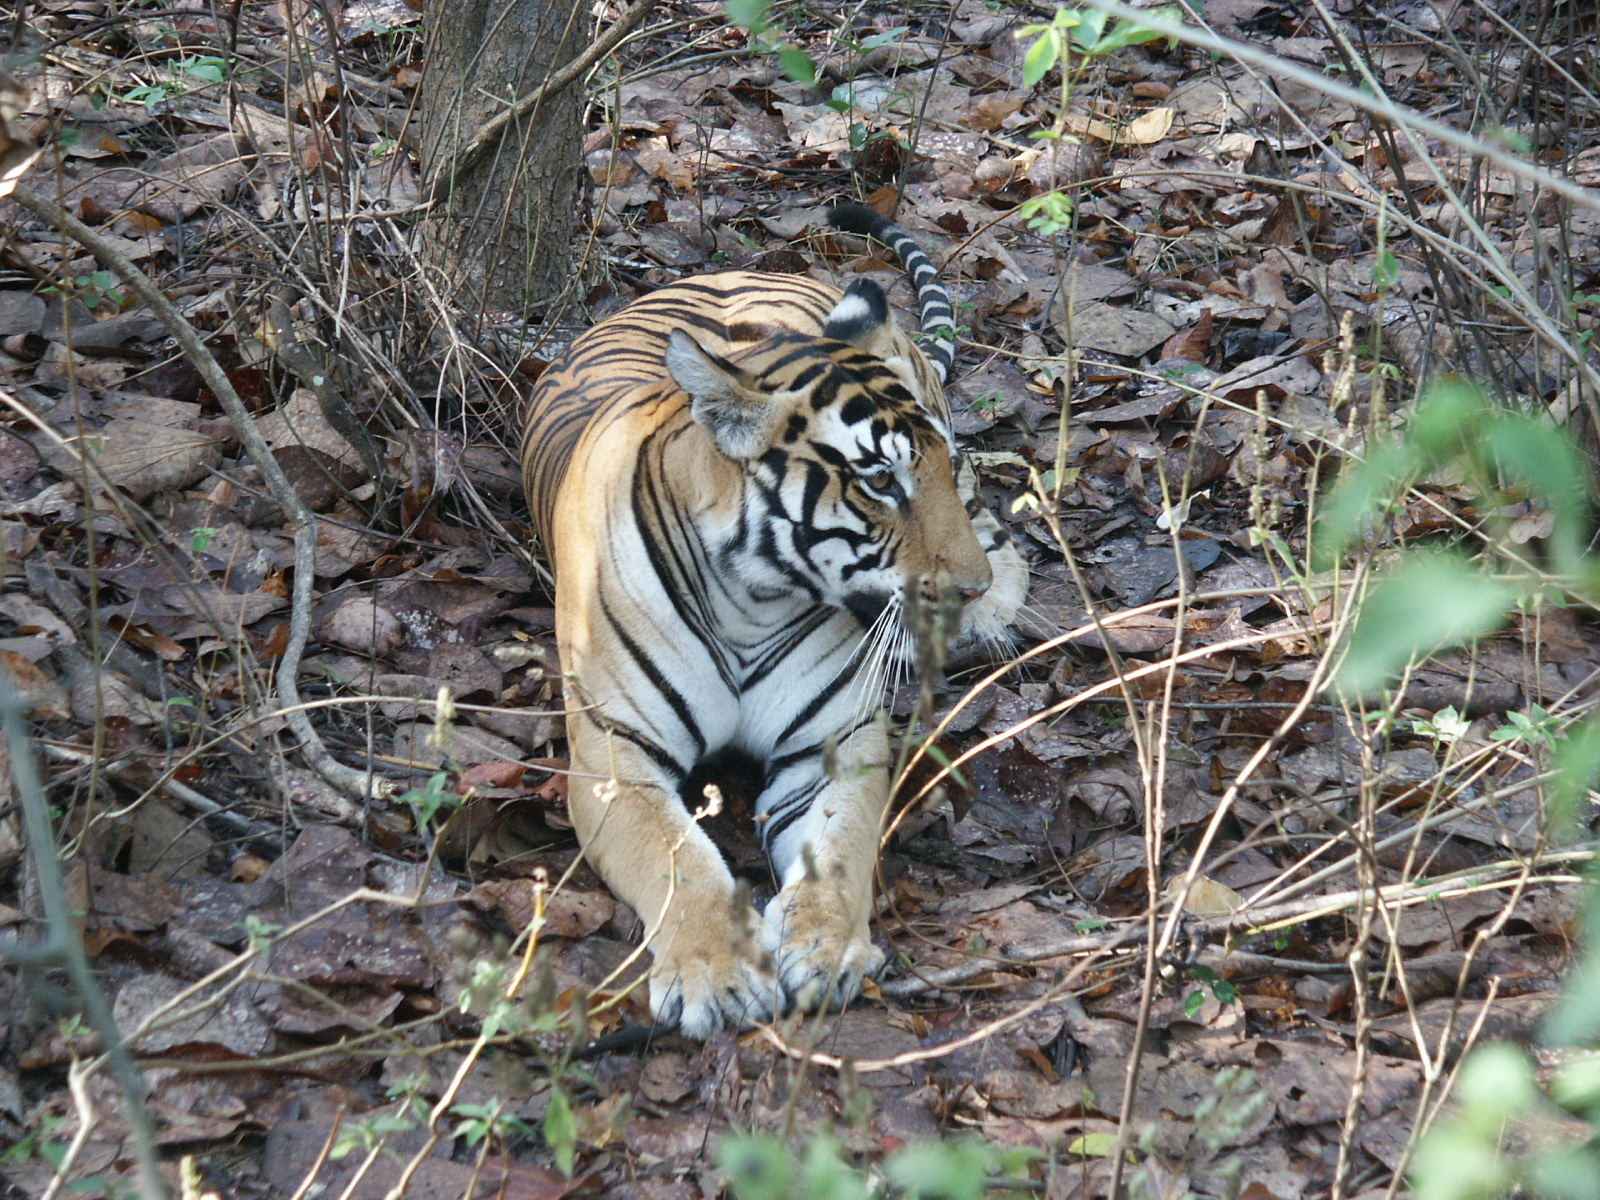 Tigers of India Picture Gallery of Kanha National Park-Tiger